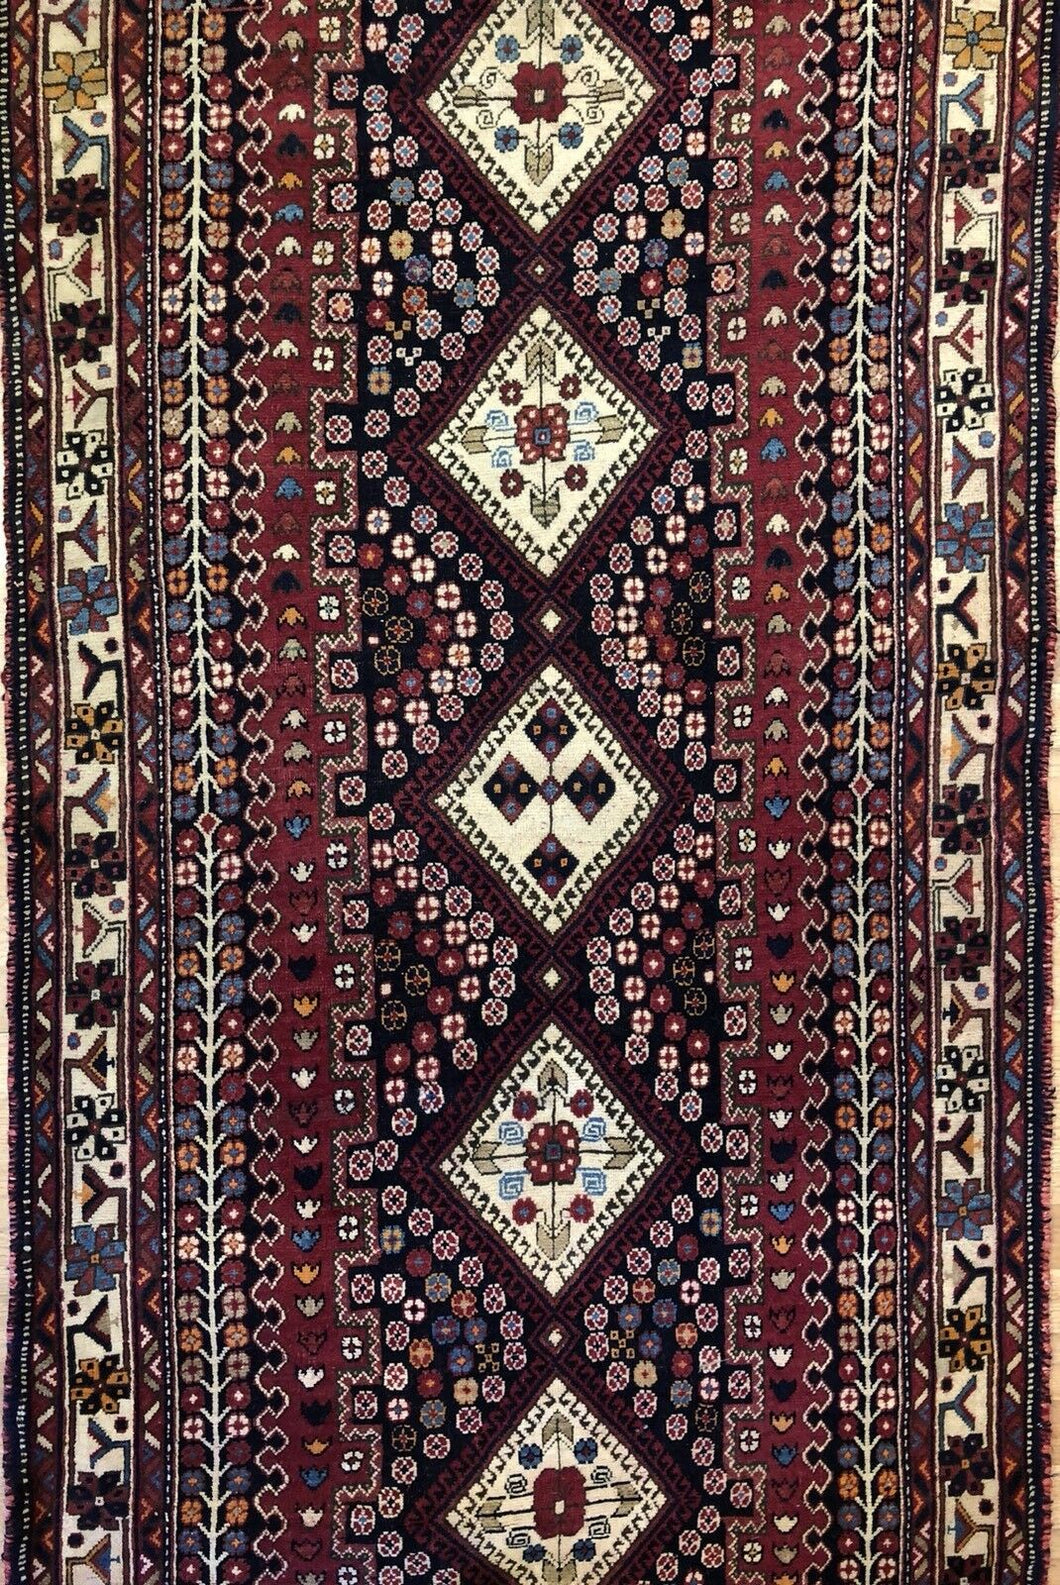 Special Shiraz - 1940s Antique Persian Rug - Tribal Runner - 3'5